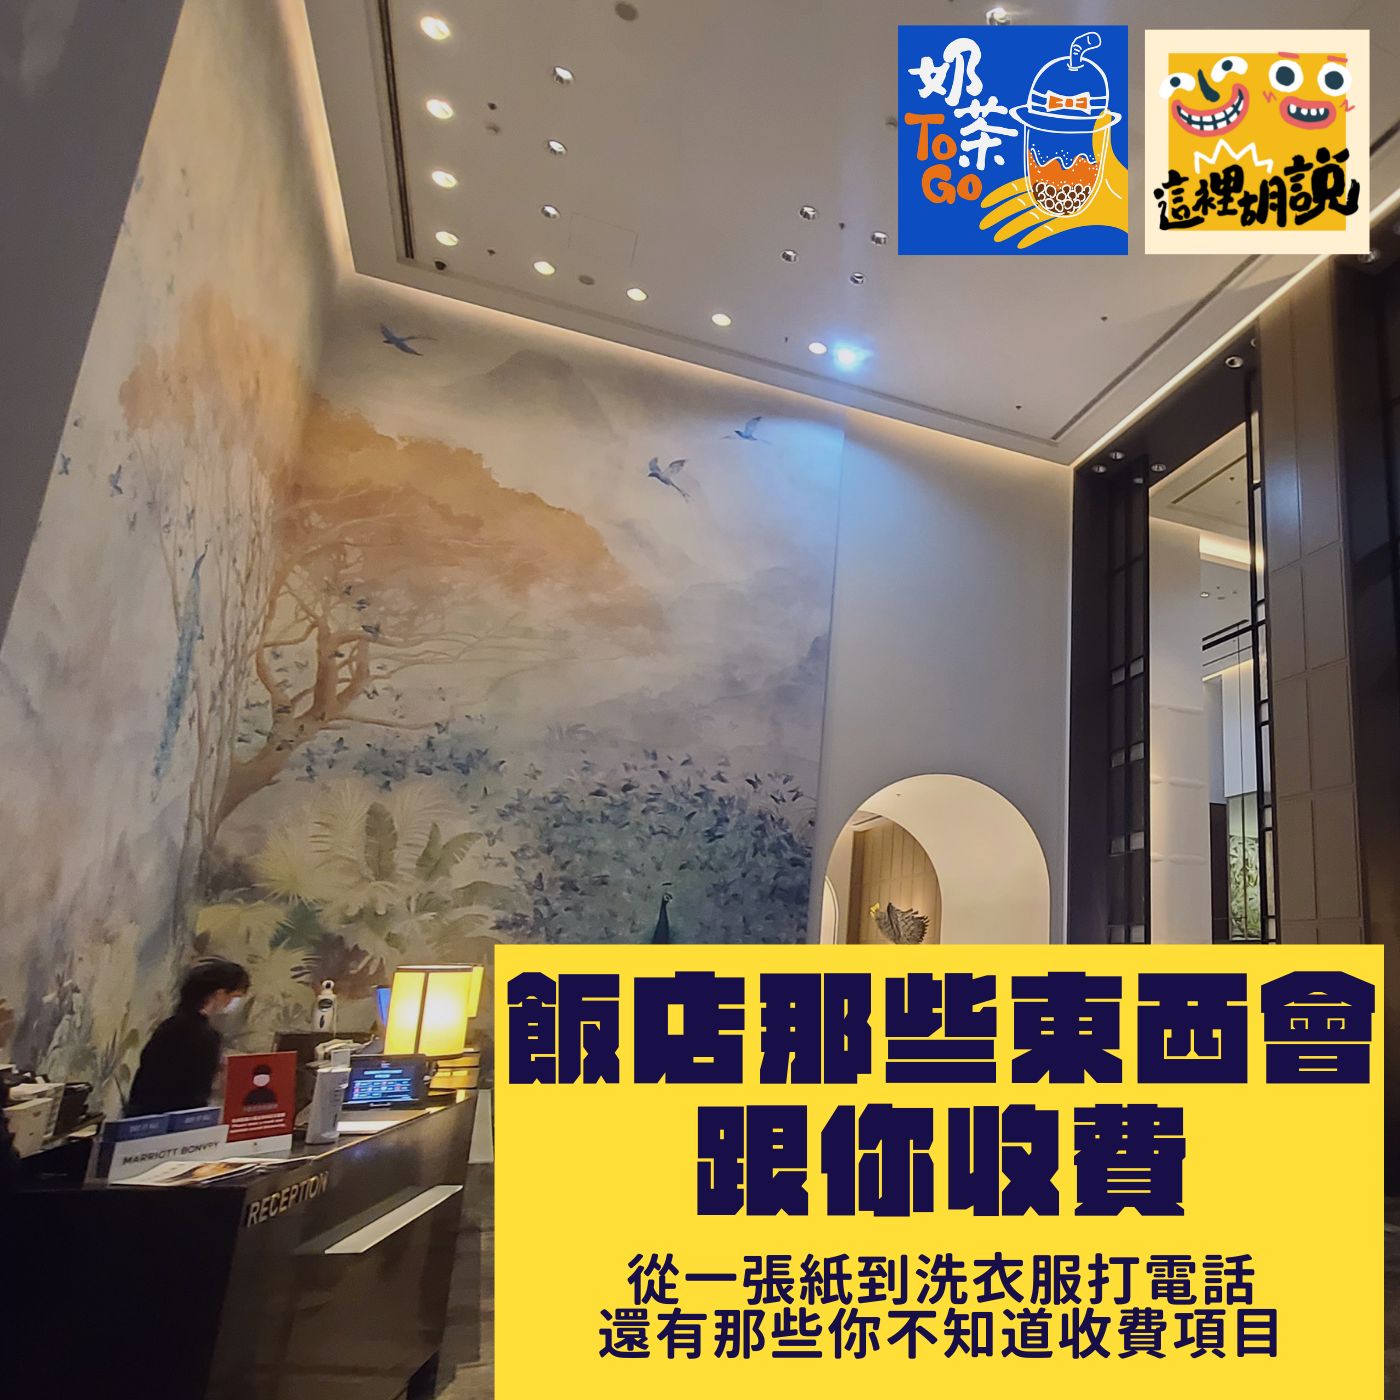 這裡胡說 Podcast : 這裡胡說目前在 APPLE Podcast, Firstory, Google Podcast, KKBOX, Spotify, MyMusic, SoundOn, 八寶, 都有上架 要聯絡傑西大叔可以發信到 jesselin.com@gmail.com Powered by Firstory Hosting